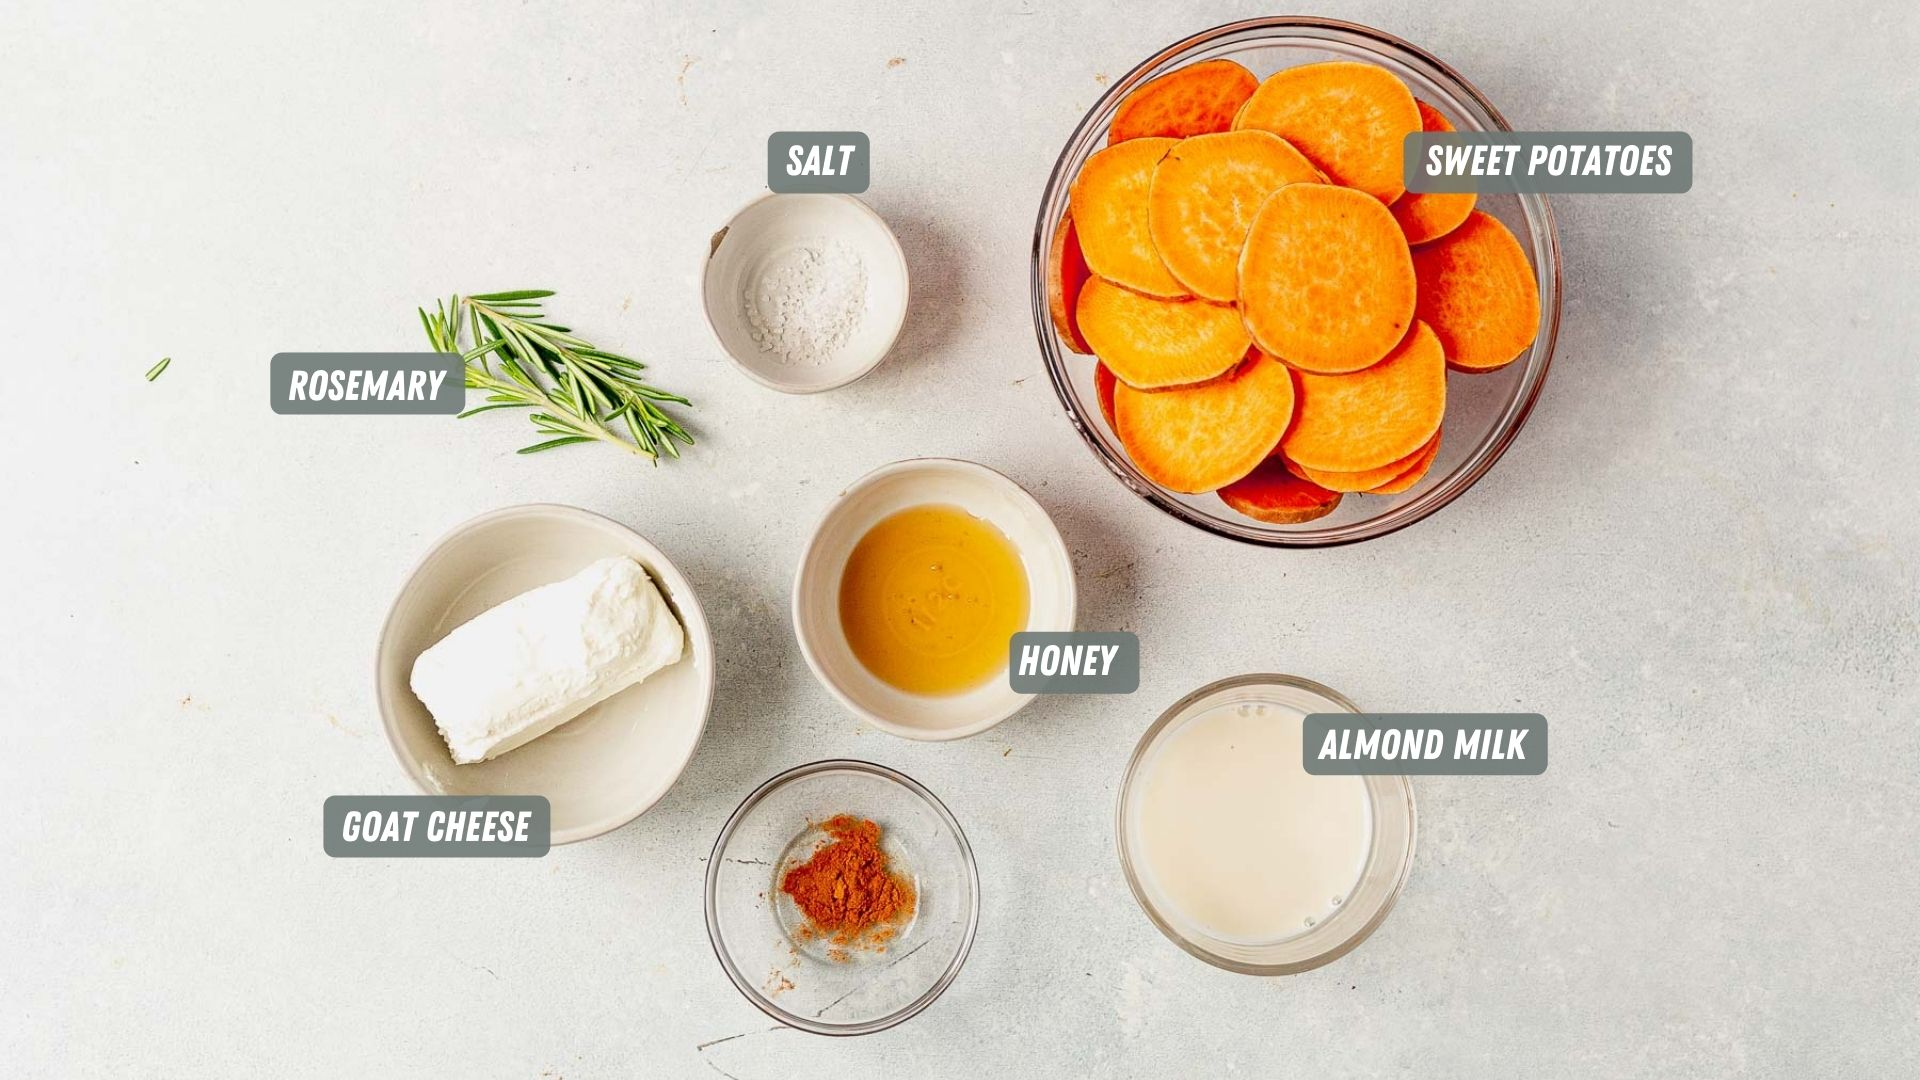 sweet potato bites ingredients measured out on a white table